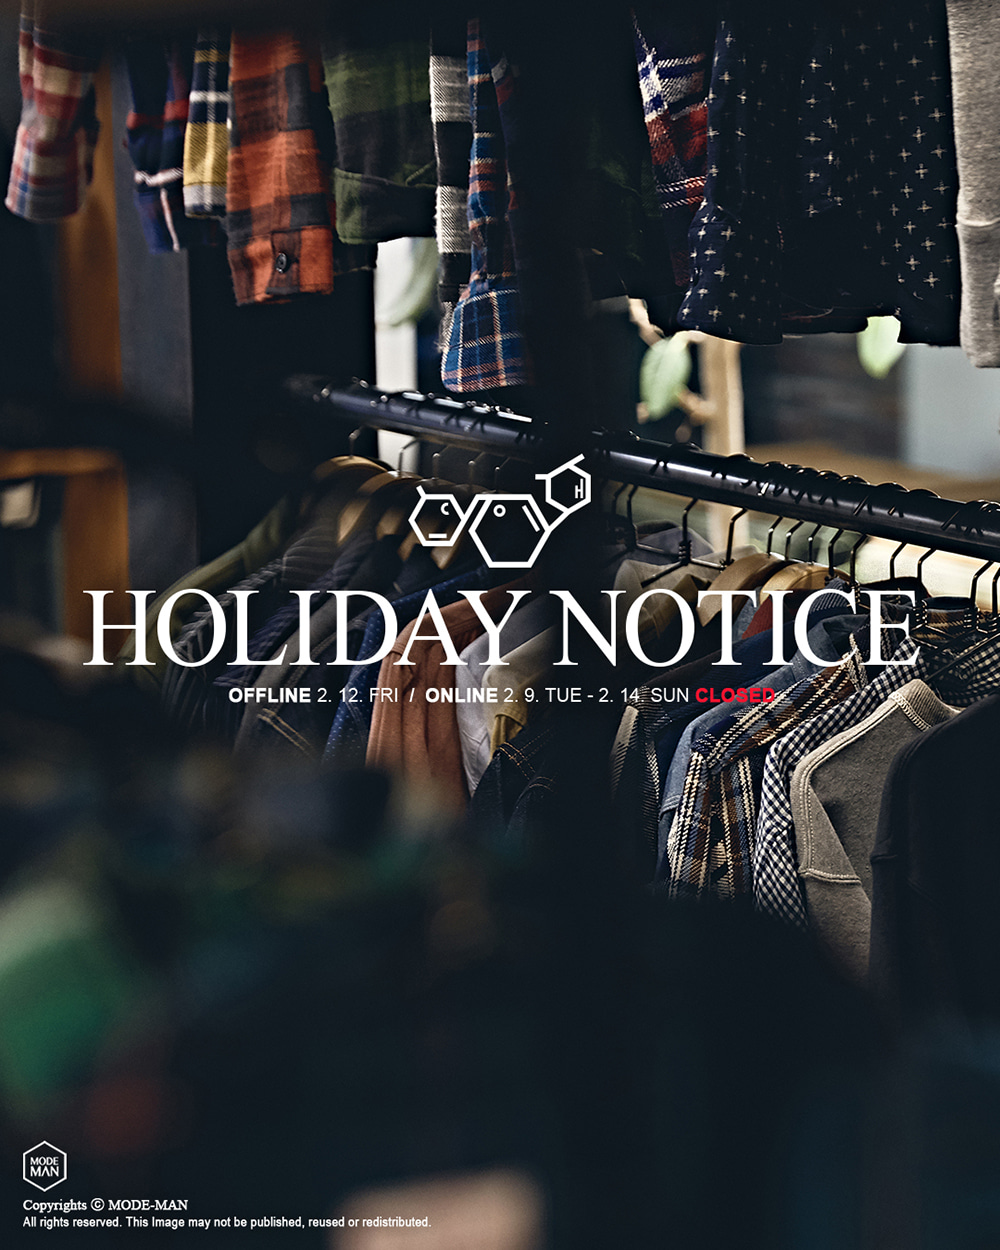 [MODE-MAN] Holiday Notice